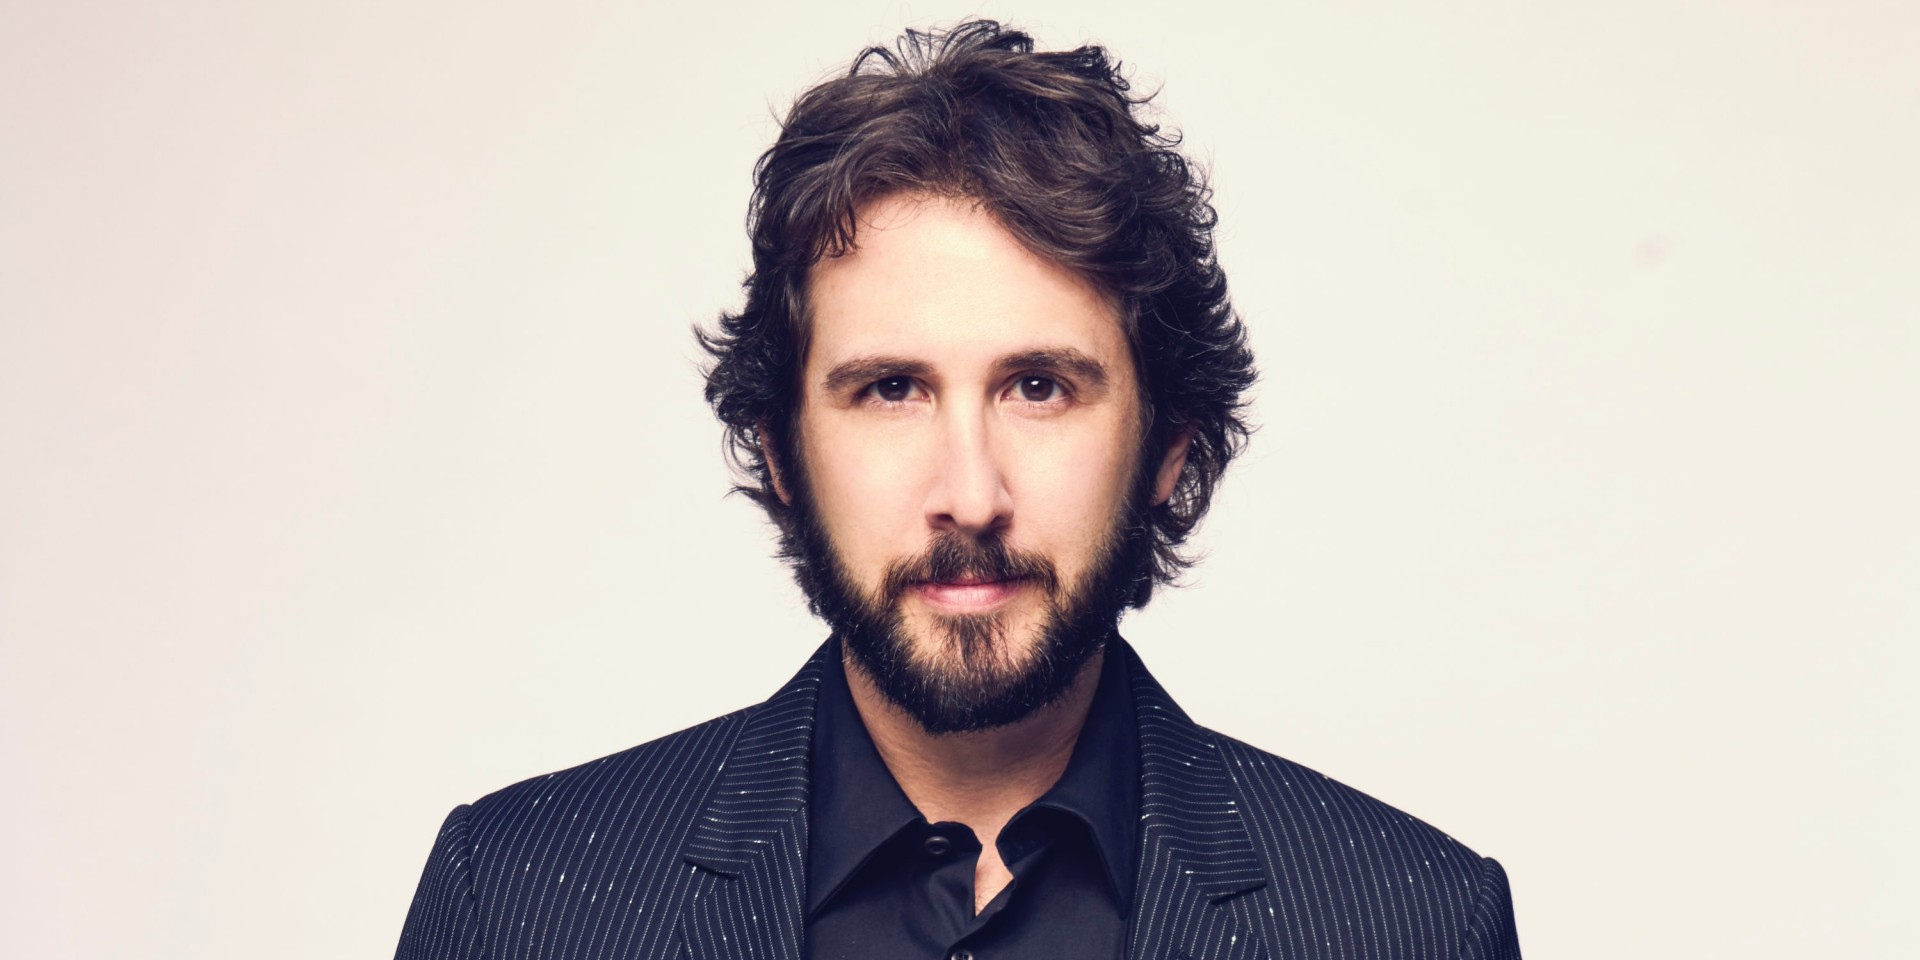 """""""Fads will come and go but a great song will withstand everything"""": An interview with Josh Groban"""